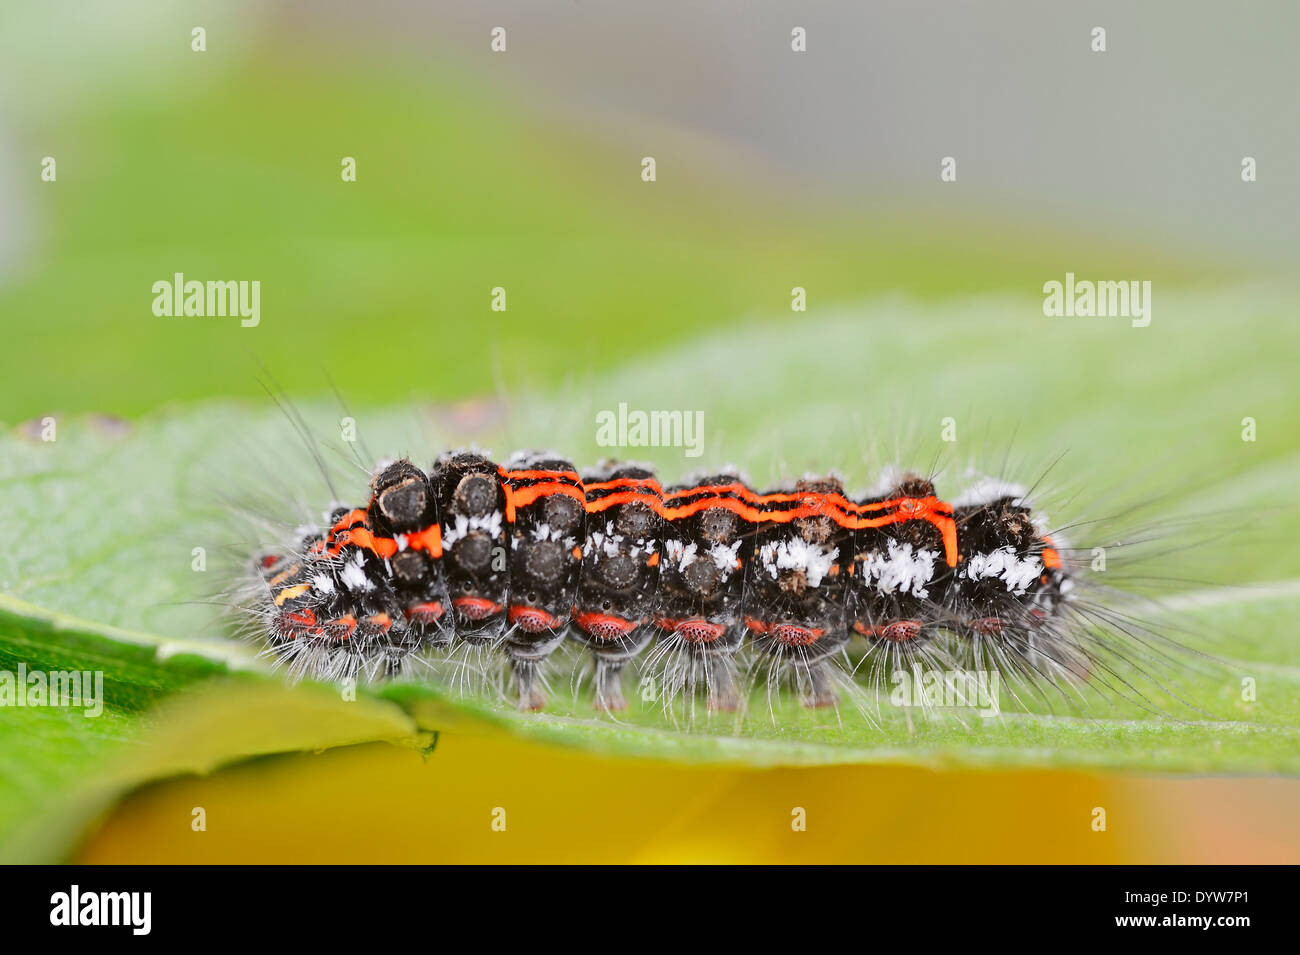 Yellow-tail Moth, Goldtail Moth or Swan Moth (Euproctis similis), caterpillar, North Rhine-Westphalia, Germany - Stock Image